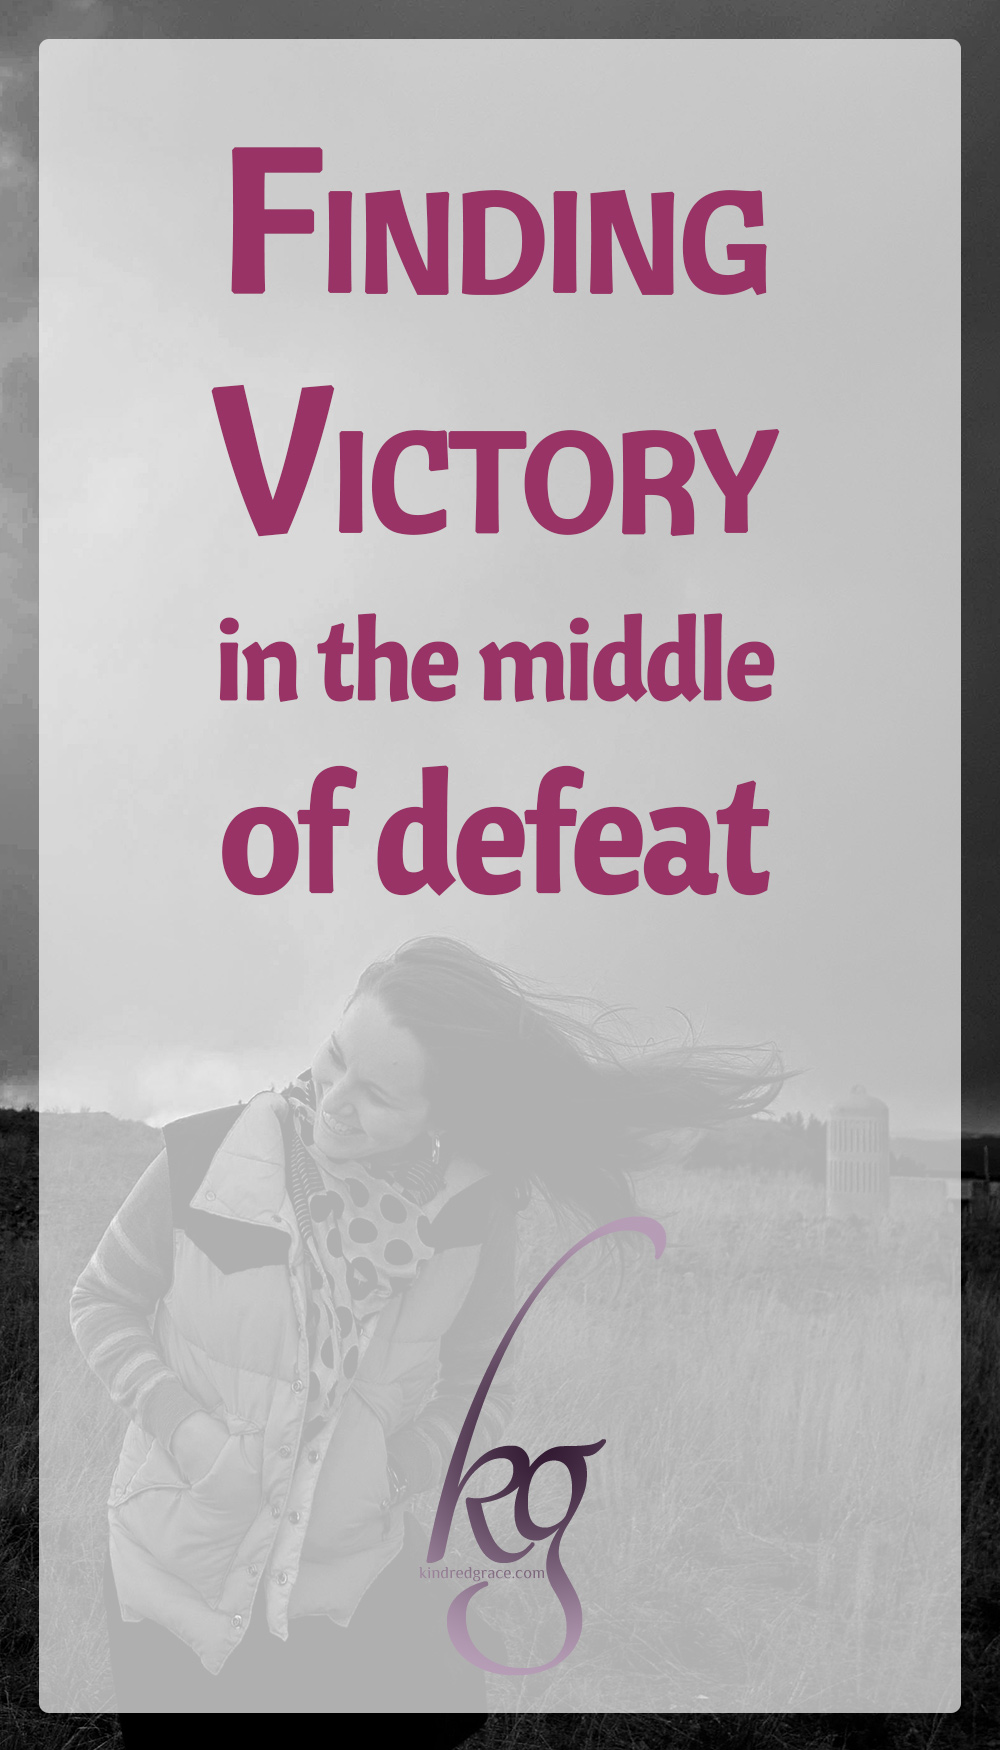 Finding Victory in Defeat via @KindredGrace